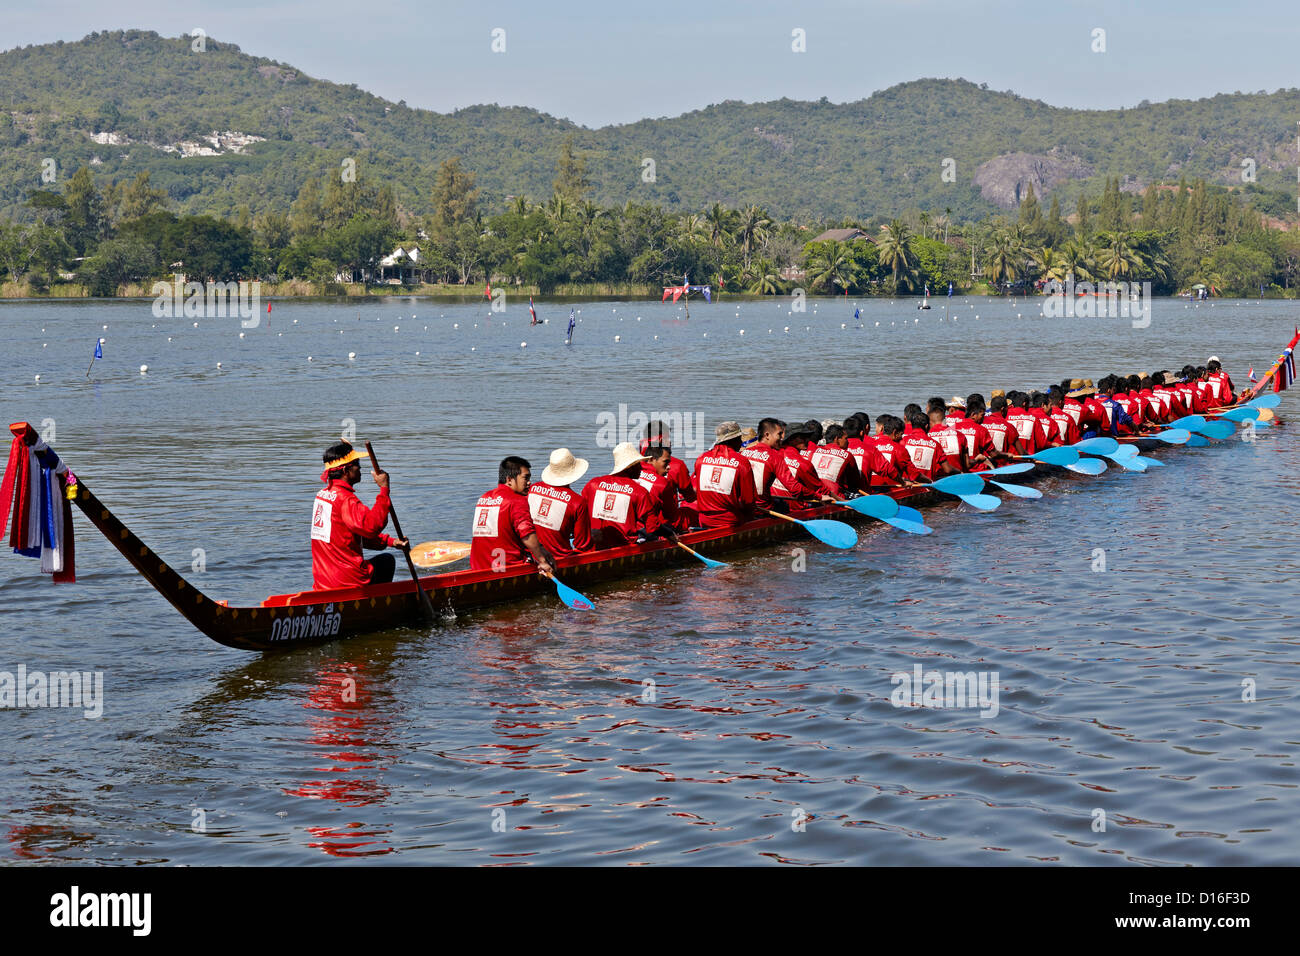 Traditional Thai long boat racing vessel and crew. Thailand S. E. Asia - Stock Image